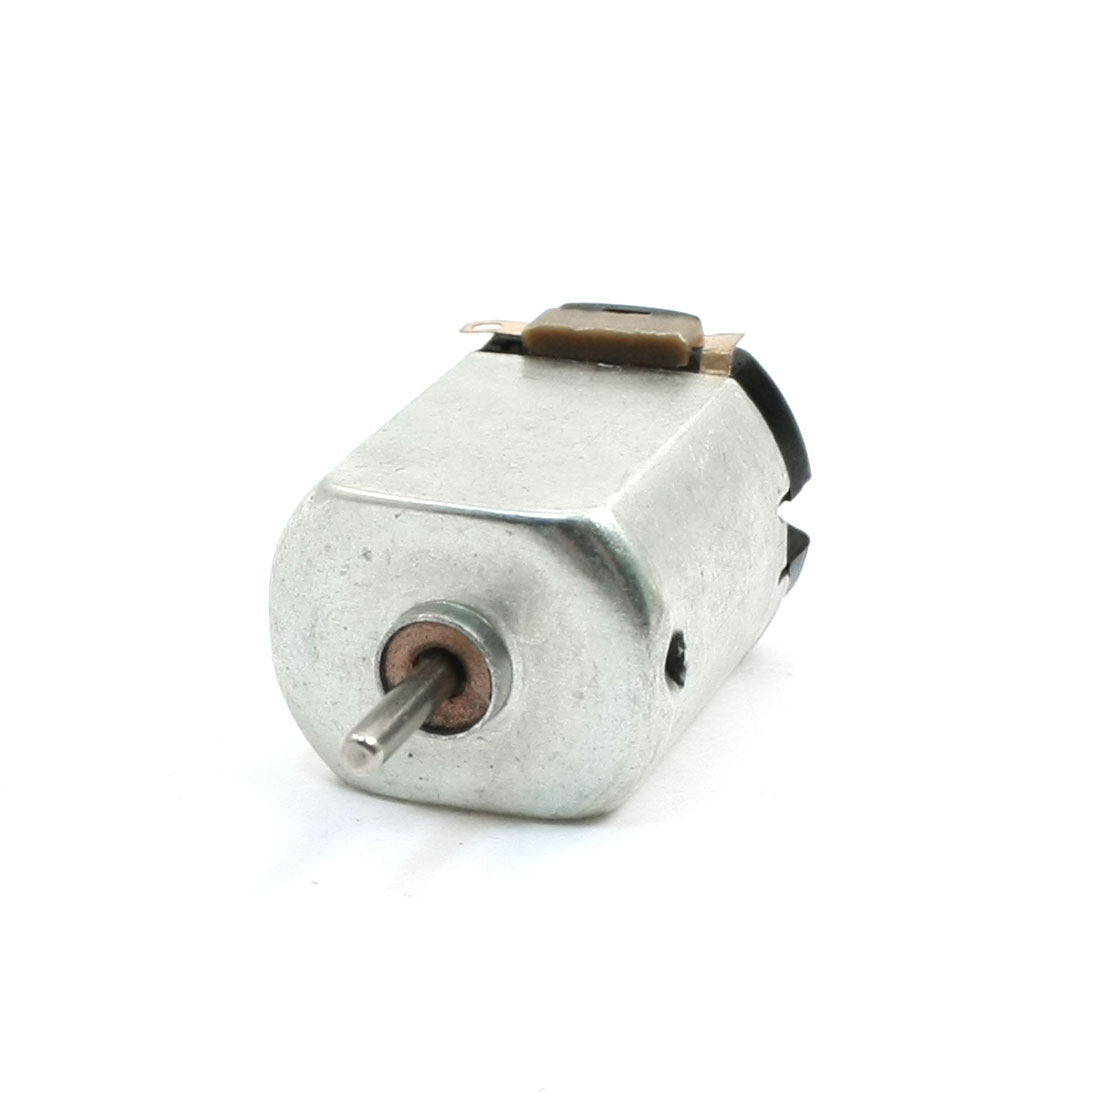 F130-A-Flat-Compact-DC-Motor-6V-10000RPM-for-Personal-Care-Products